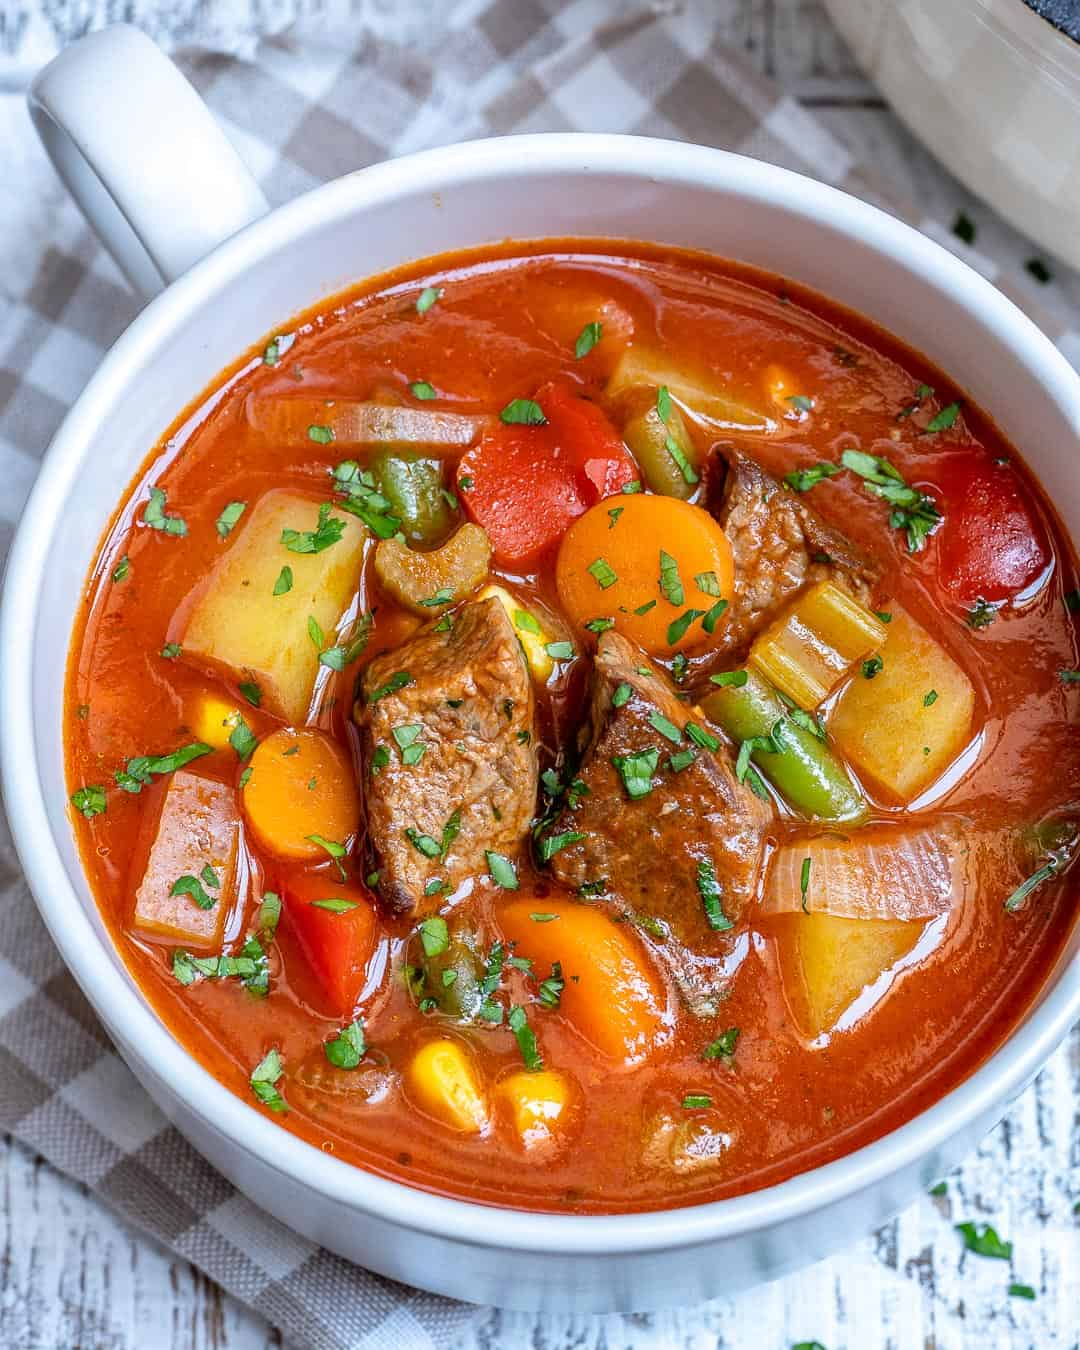 easy beef soup recipe using veggies and tomato sauce